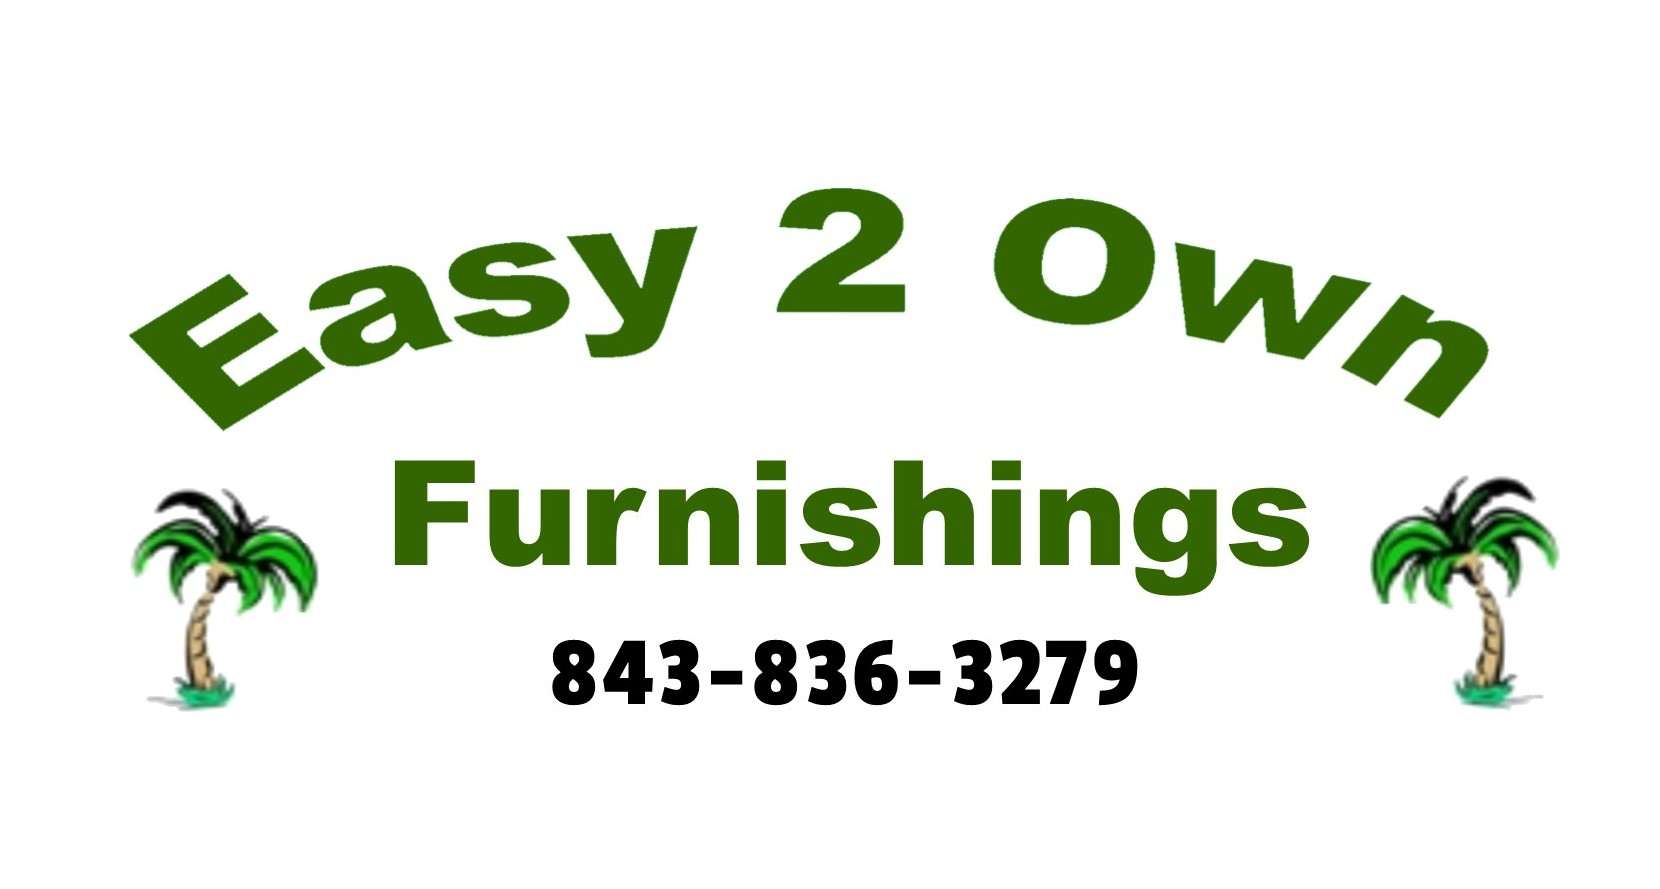 Easy 2 Own Furnishings